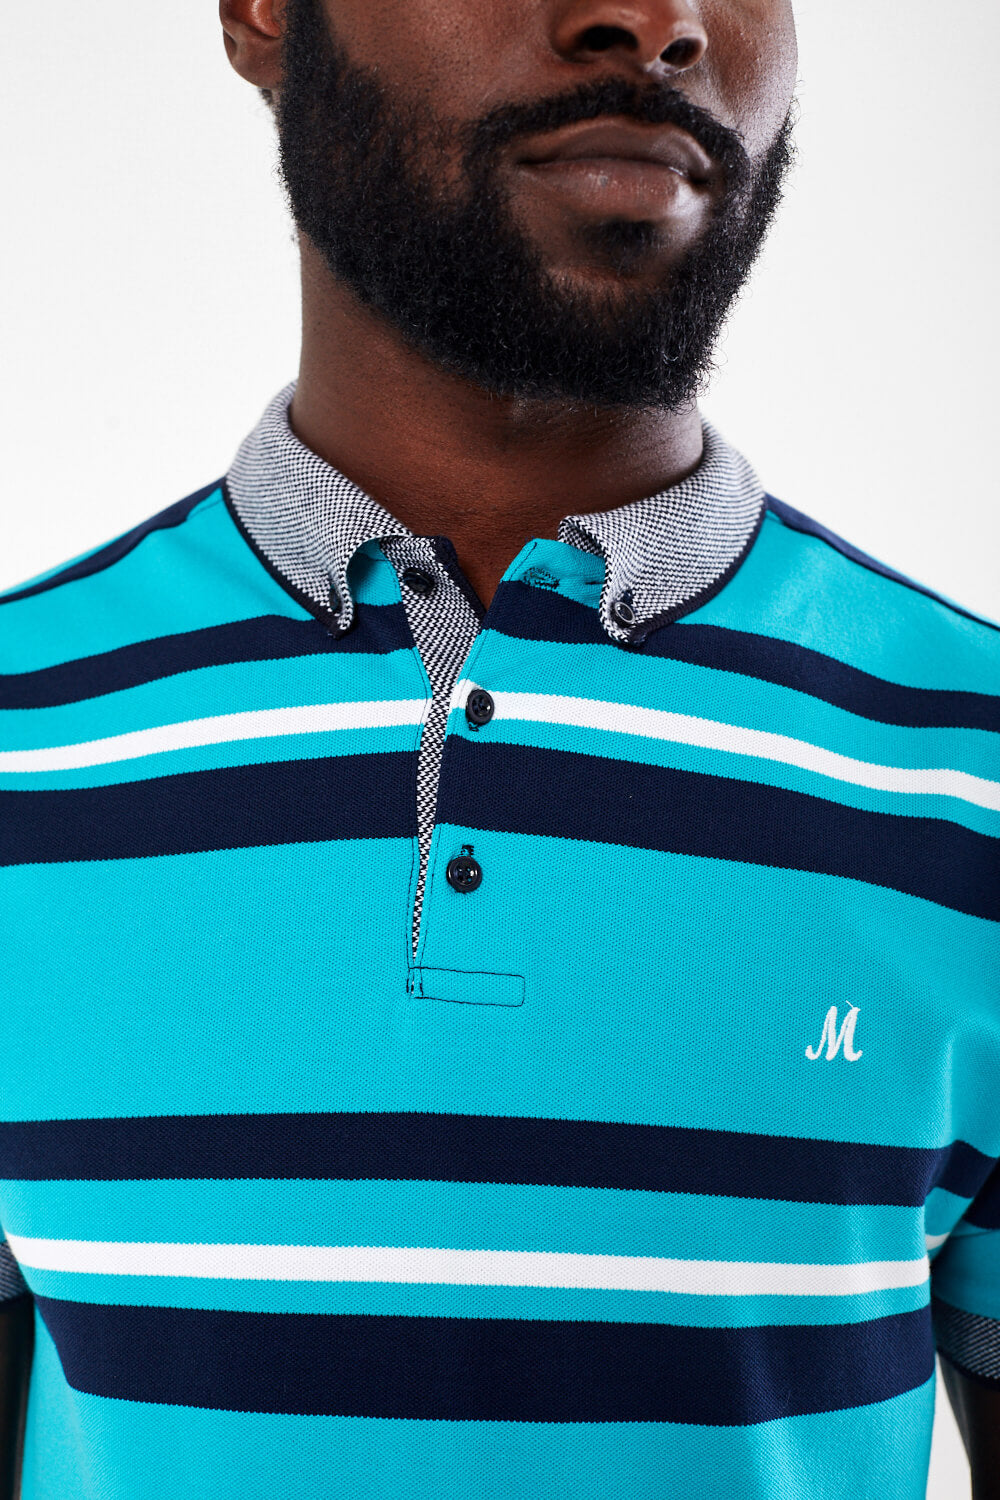 Mineral Stripe Polo - Dara Teal - jjdonnelly